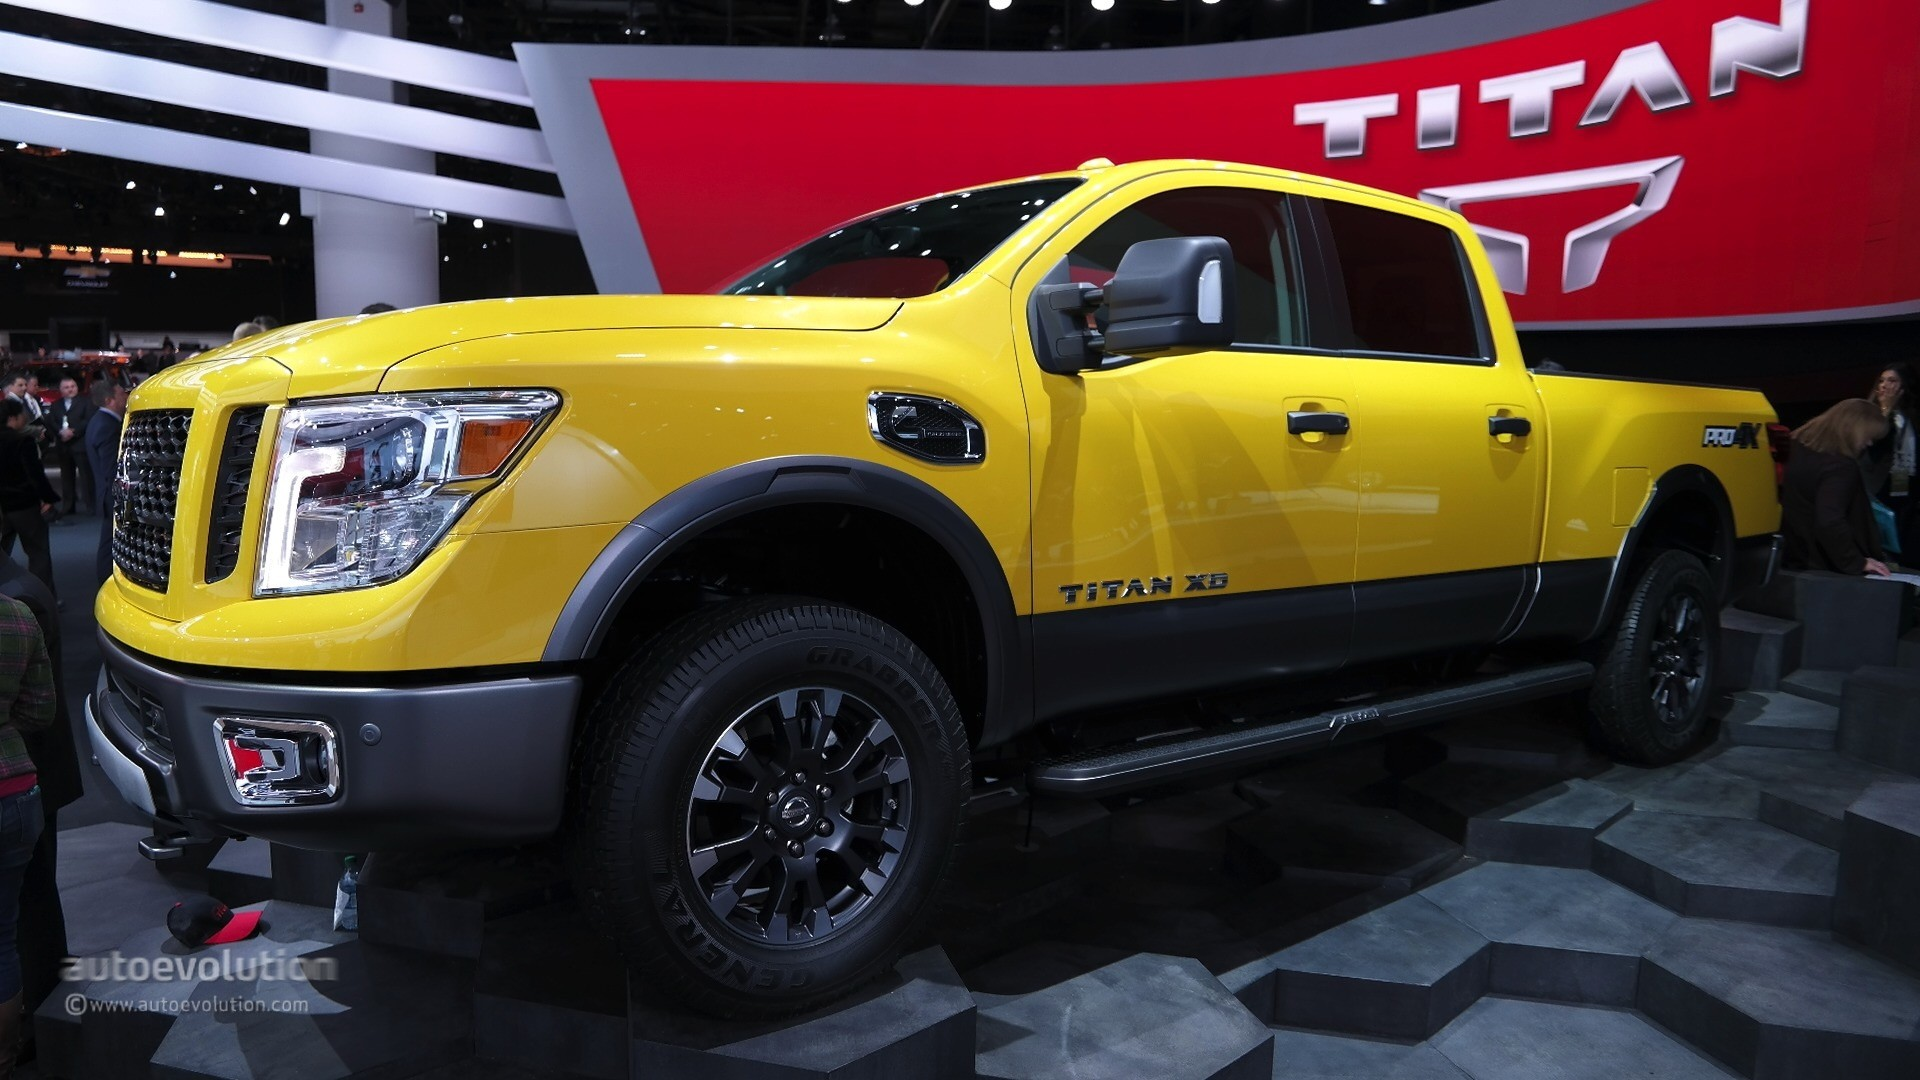 Nissan Diesel Truck >> 2016 Nissan Titan Design Walkthrough is an Interesting Watch – Video, Photo Gallery - autoevolution